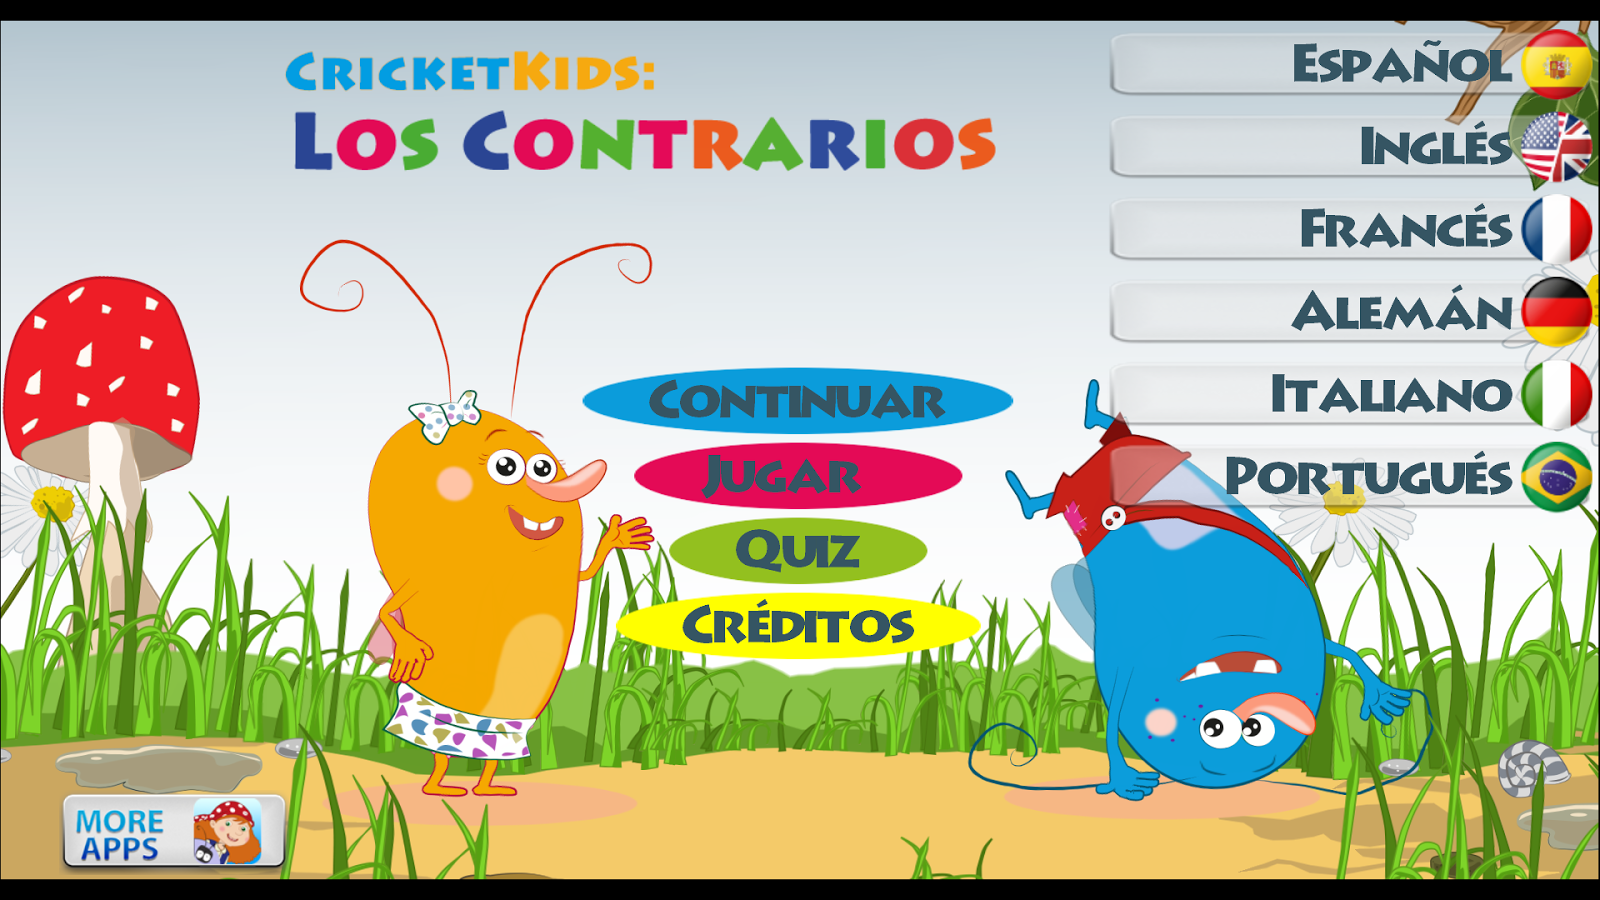 Cricket Kids: Los contrarios: captura de pantalla